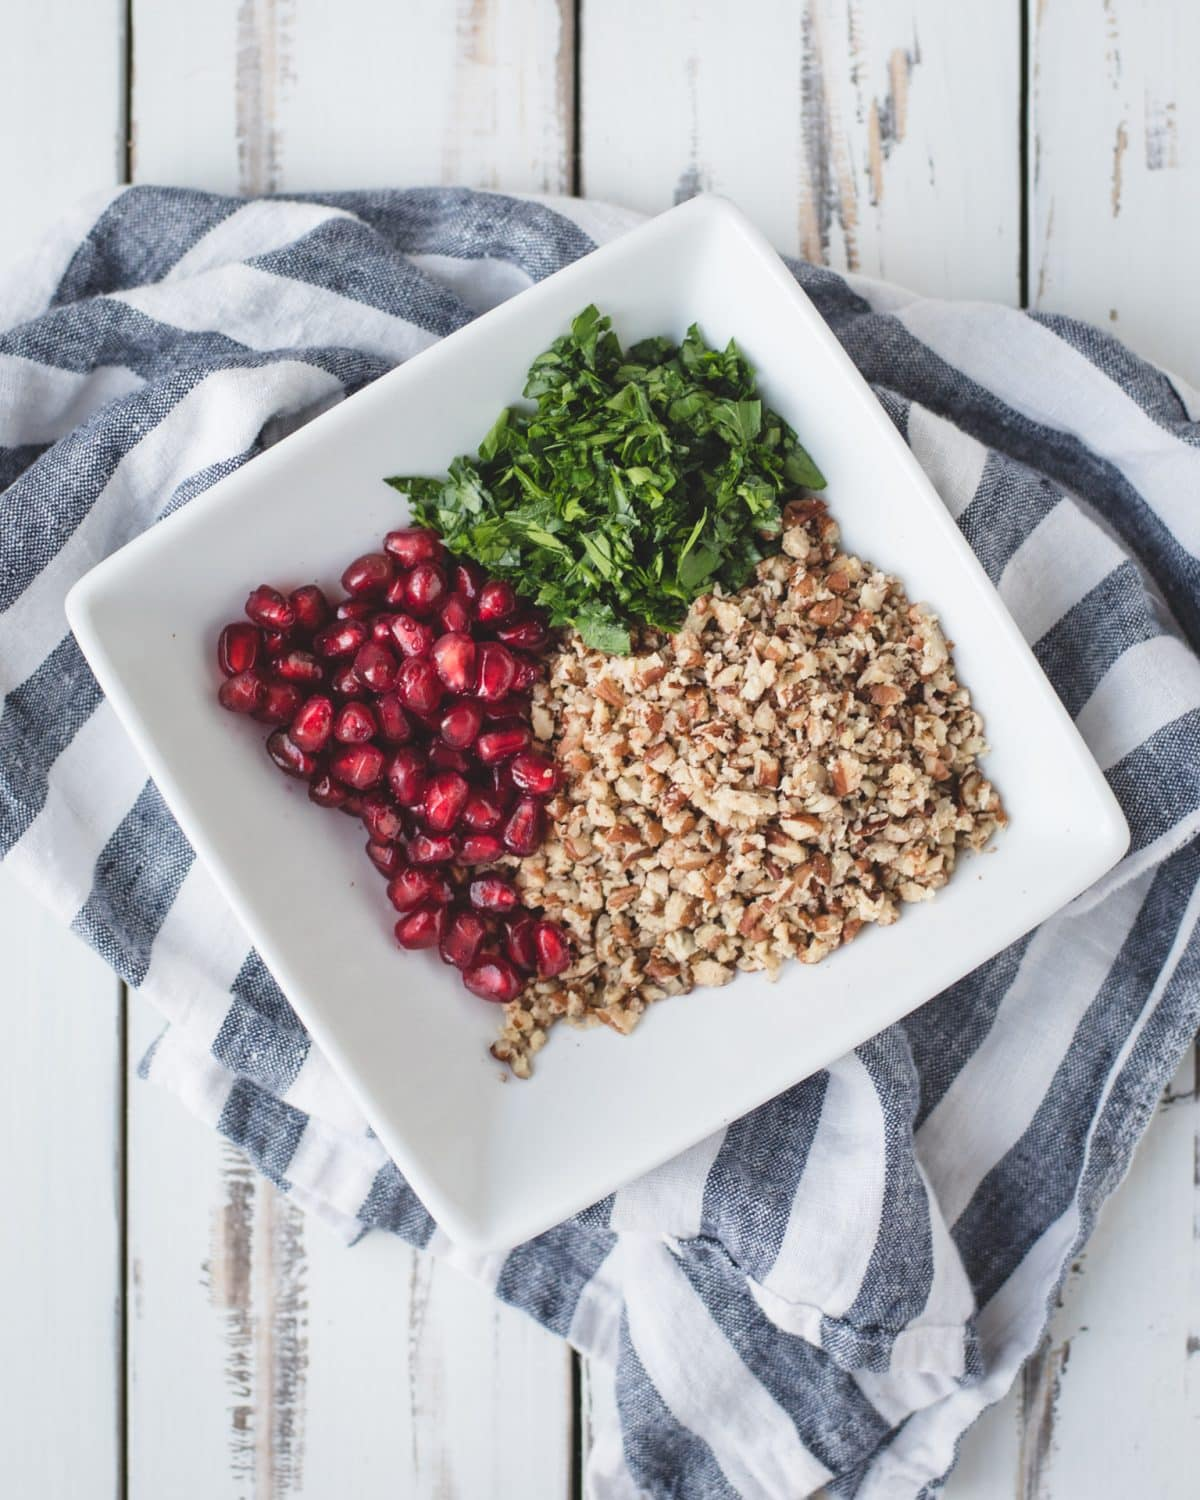 pomegranate, parsley, and crushed pecans in a white bowl